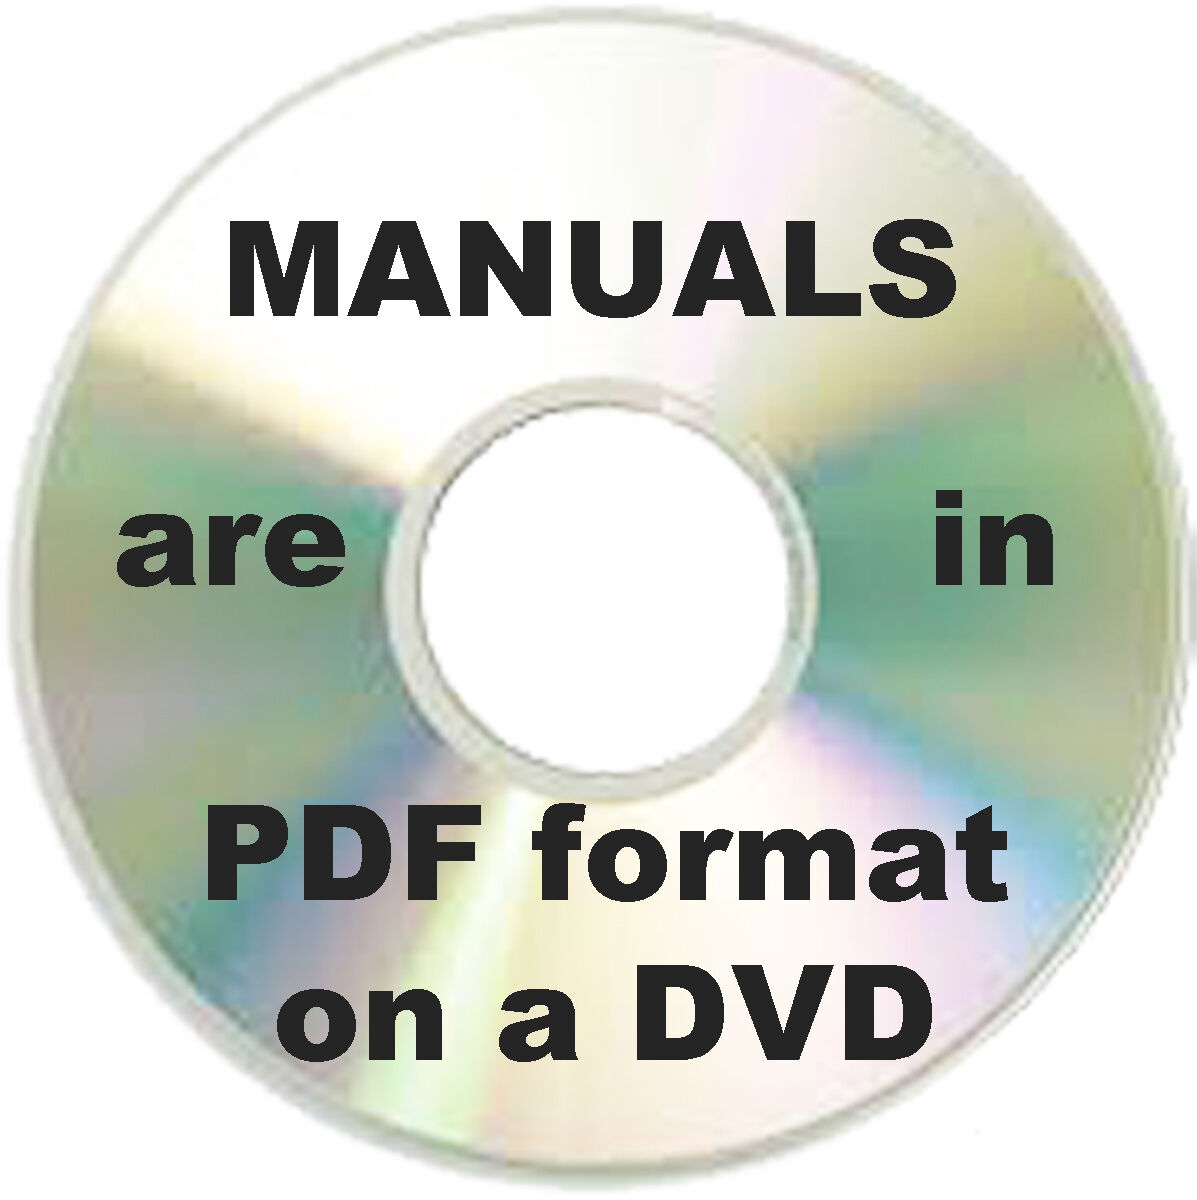 ford new holland 40 5640 6640 7740 7840 8240 8340 repair service ford new holland 40 5640 6640 7740 7840 8240 8340 repair service 10 manuals cd 12 12 of 12 see more